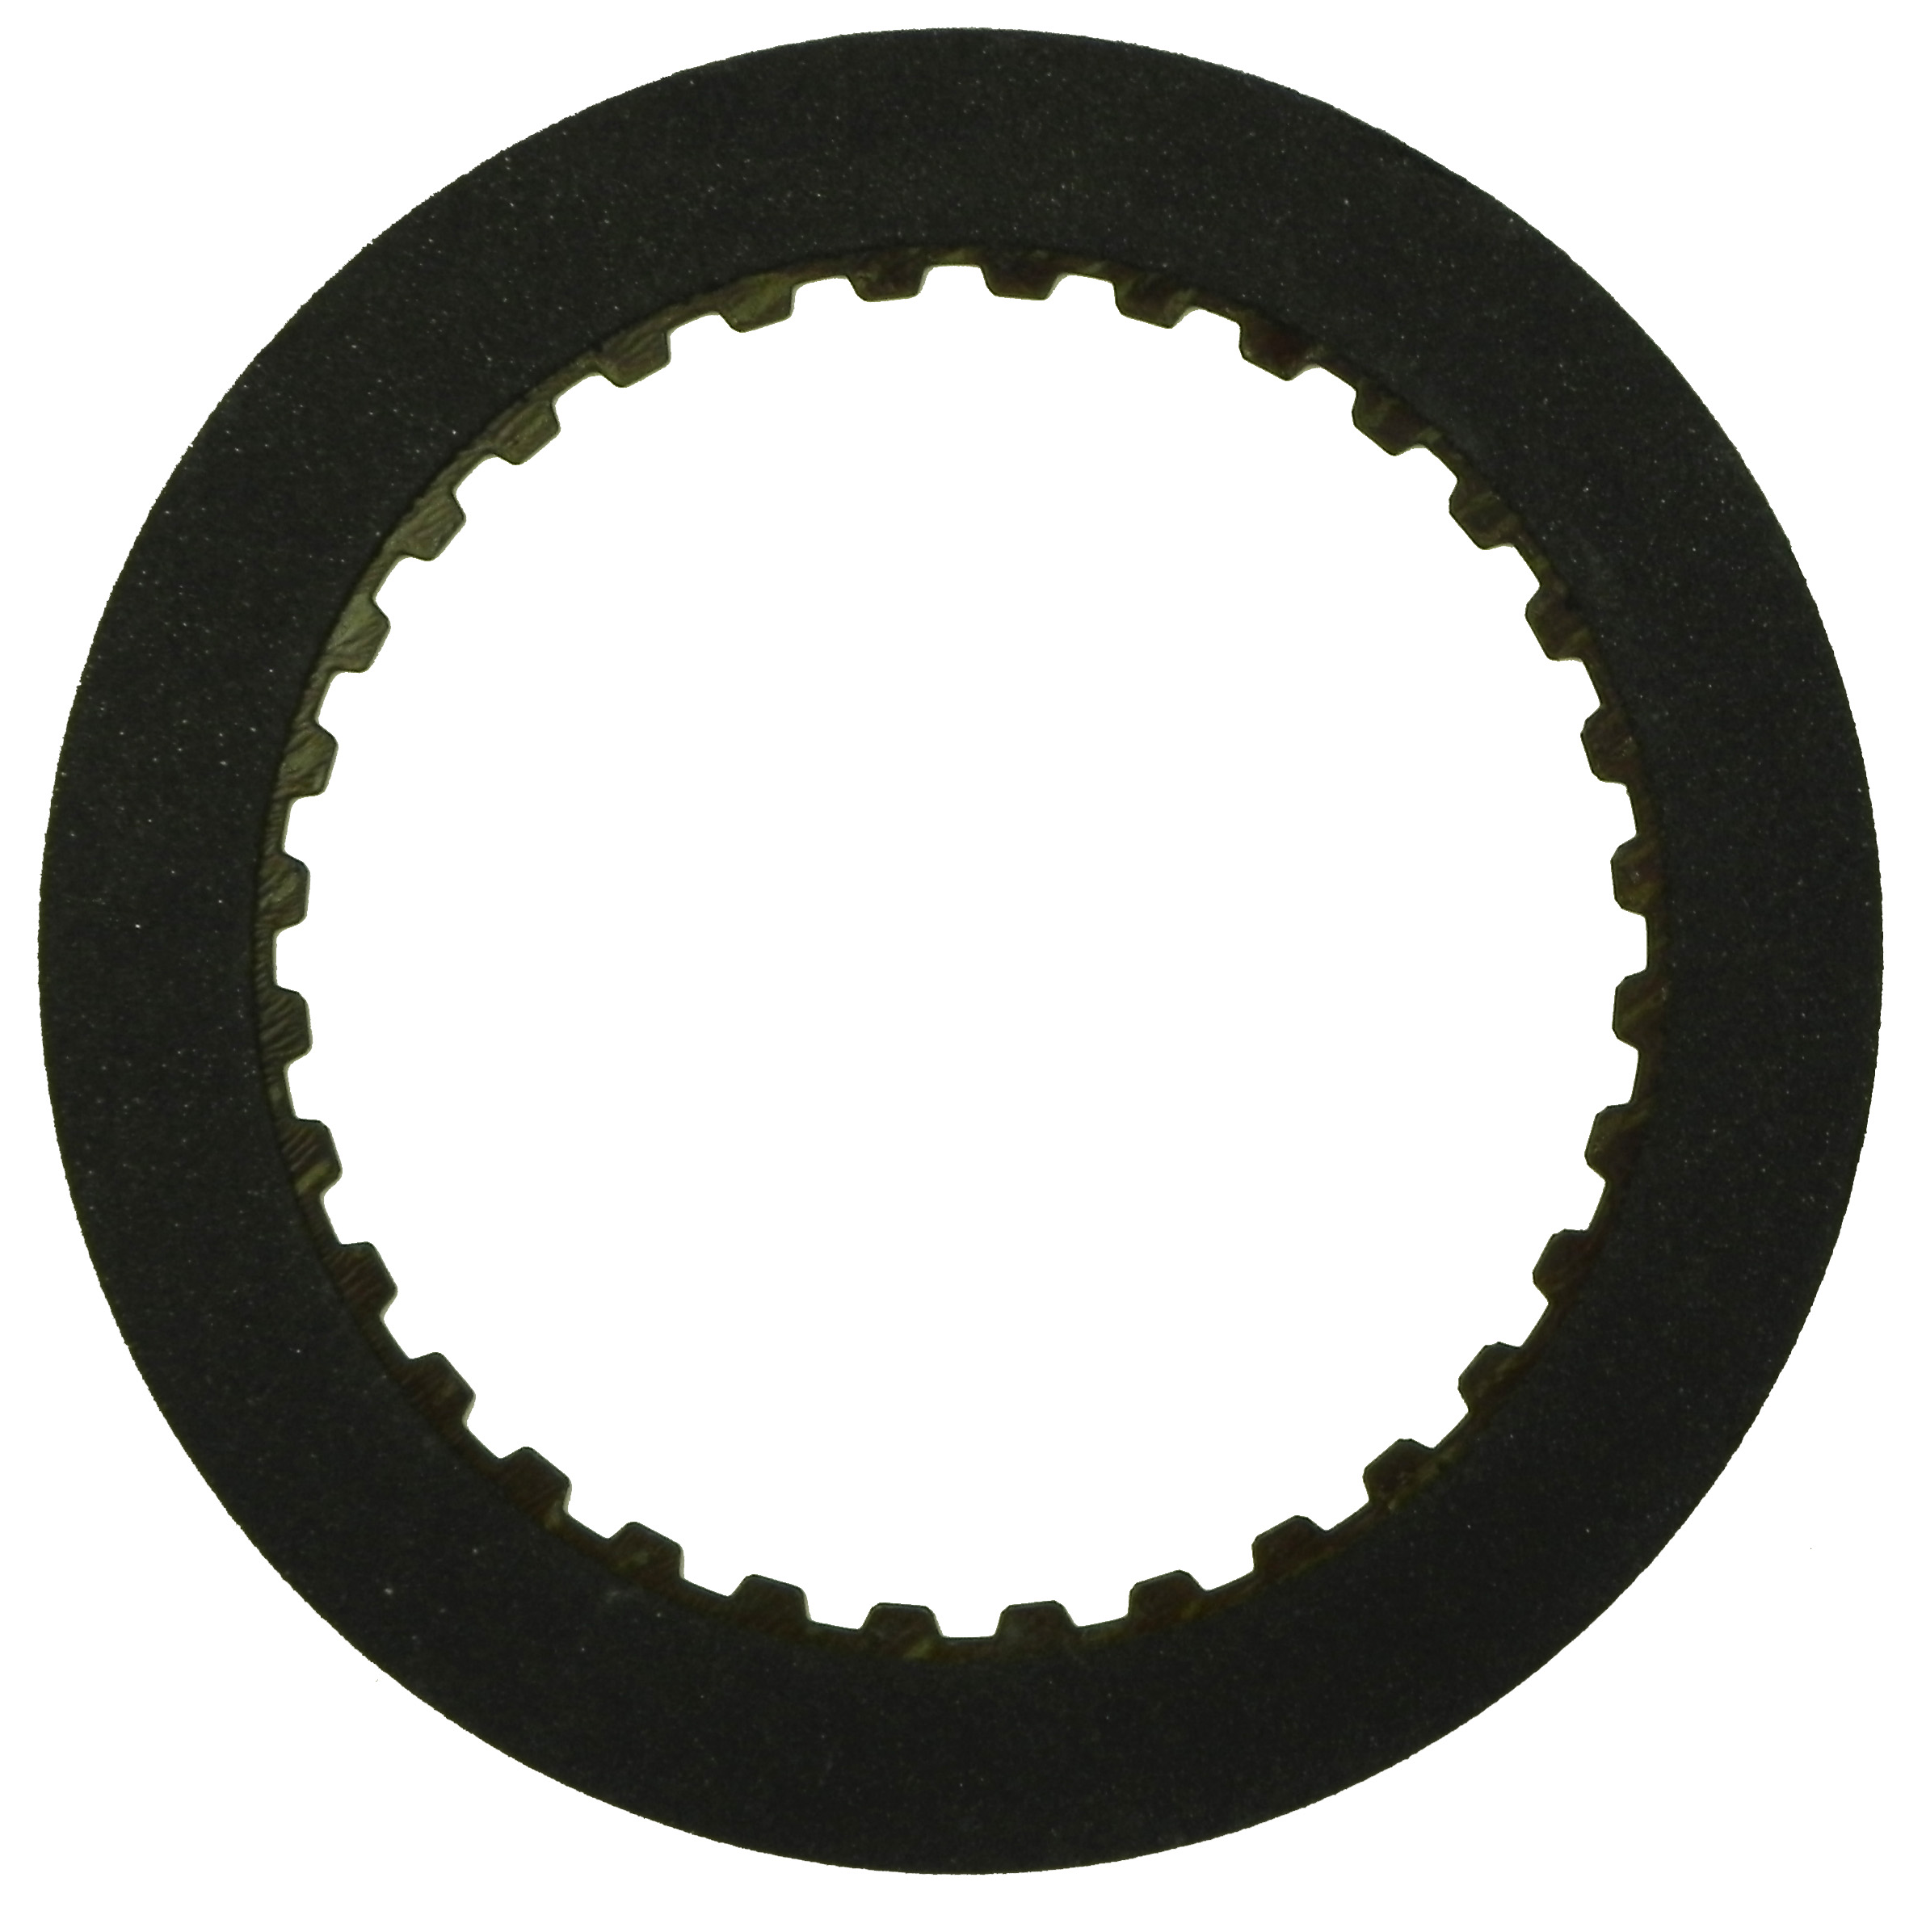 R561635 | 1989-ON Friction Clutch Plate High Energy 3rd (4T60E) High Energy, Single Sided, ID Spline, 2 Stripes